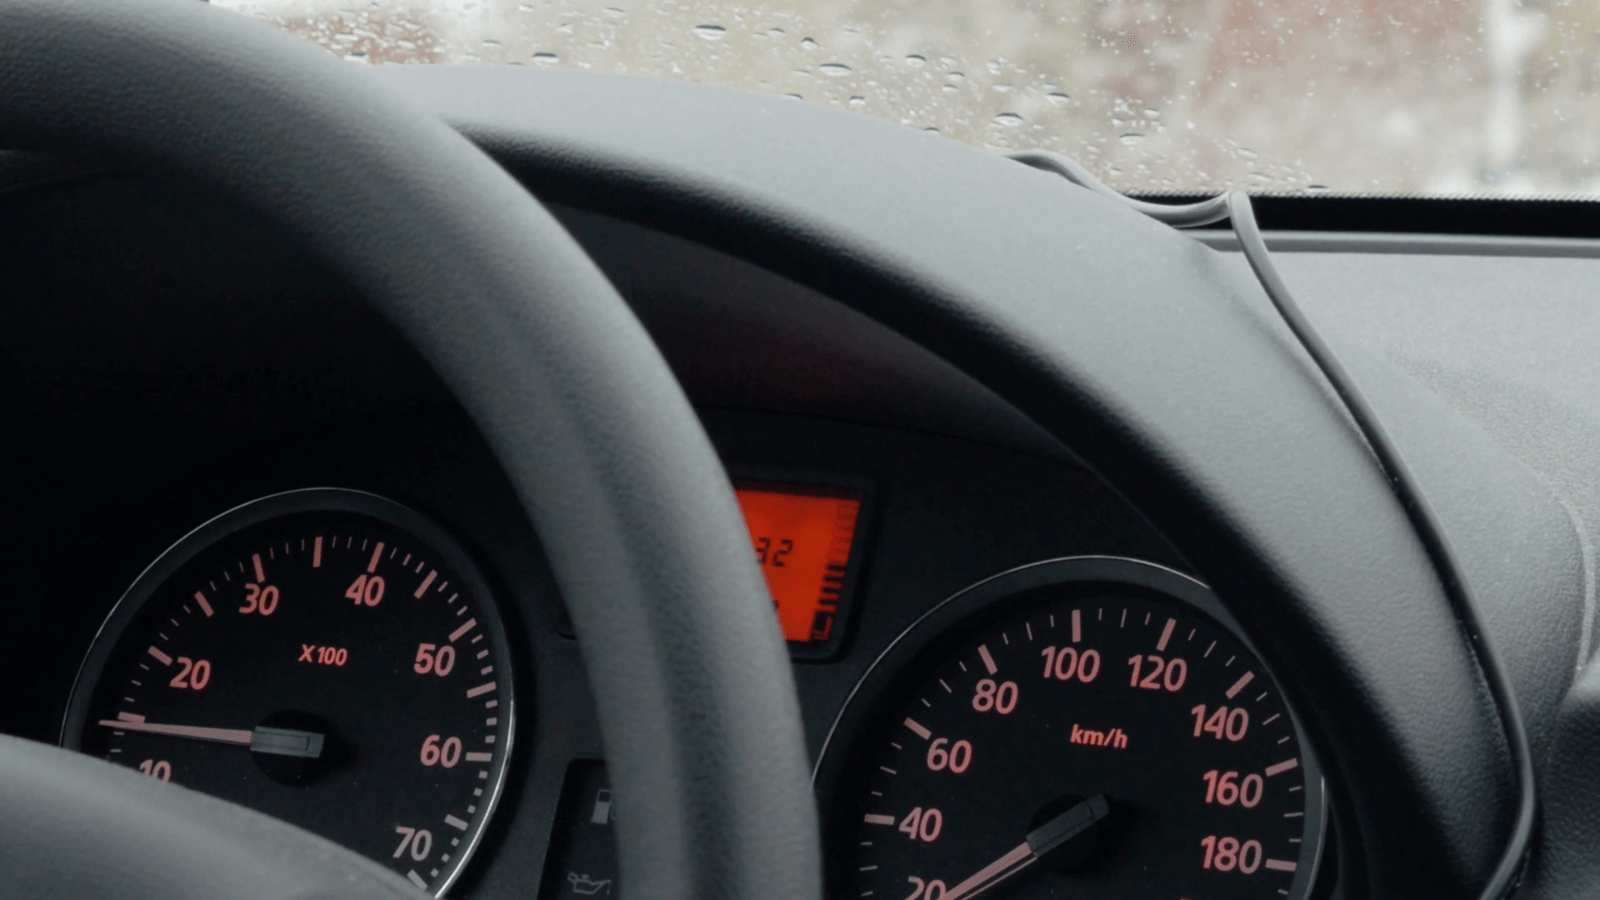 Why Does The Electronic Throttle Control Light Flash? | CAR